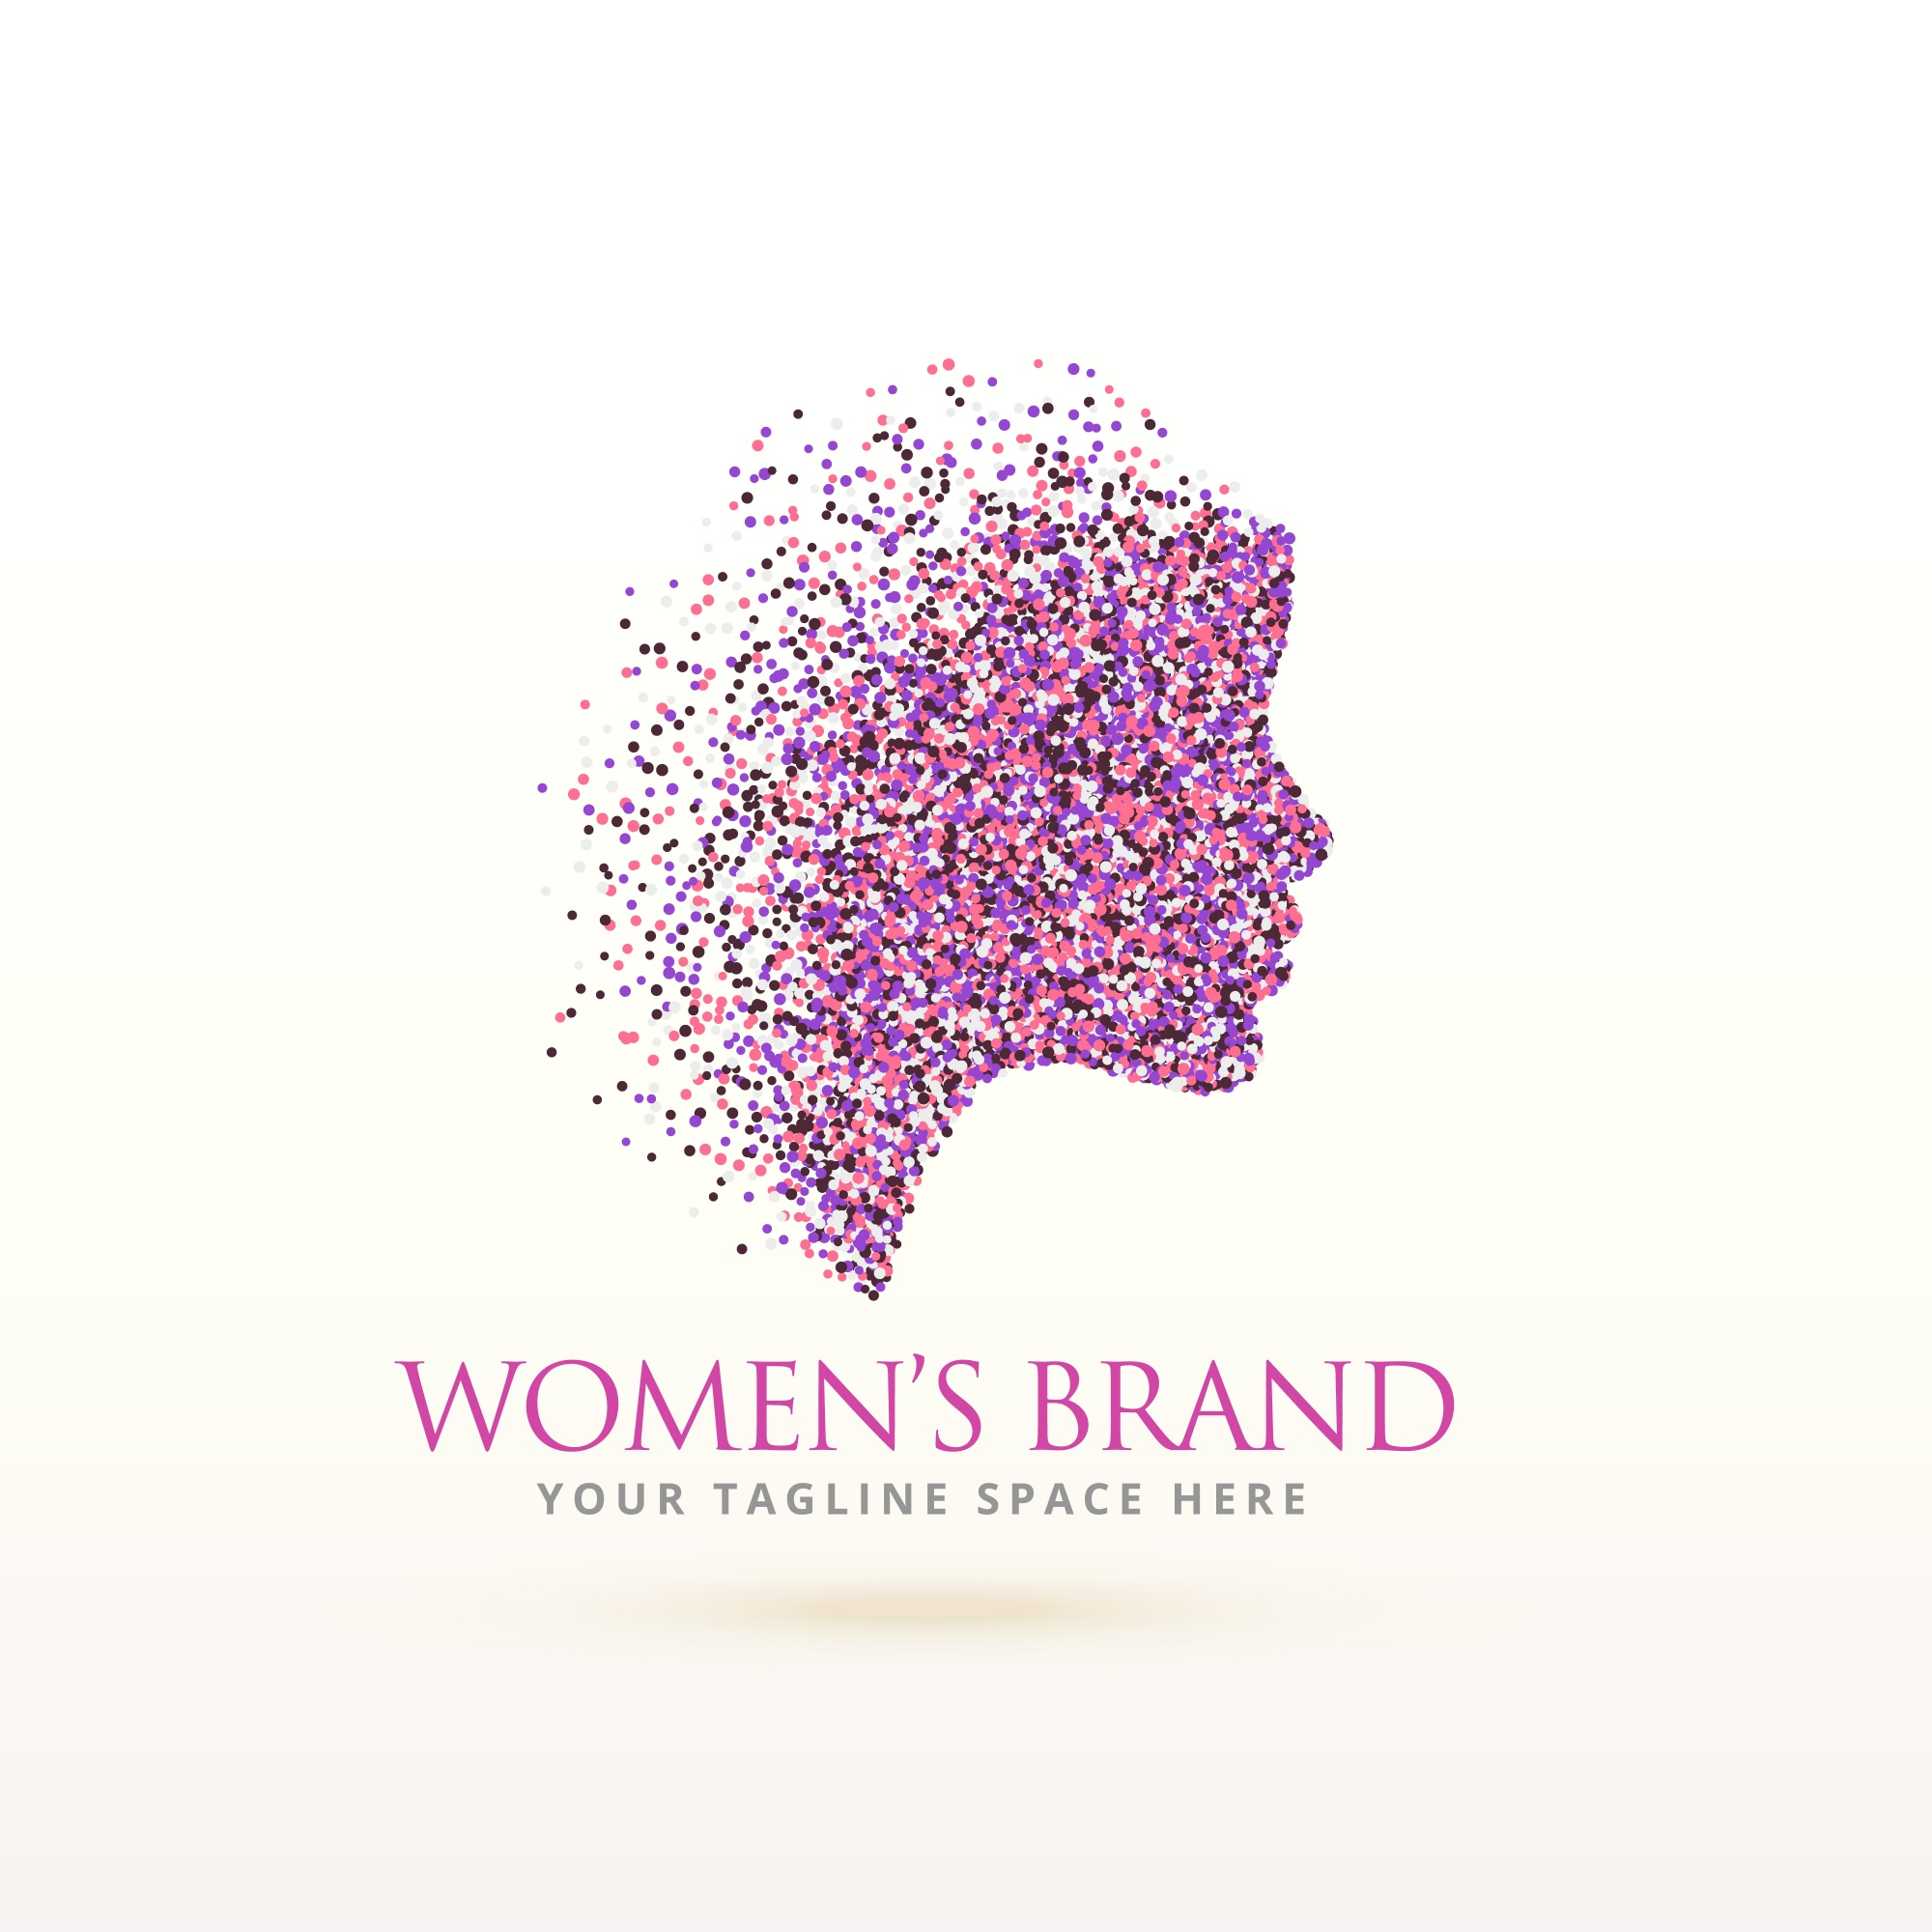 Silhouette woman logo with particles